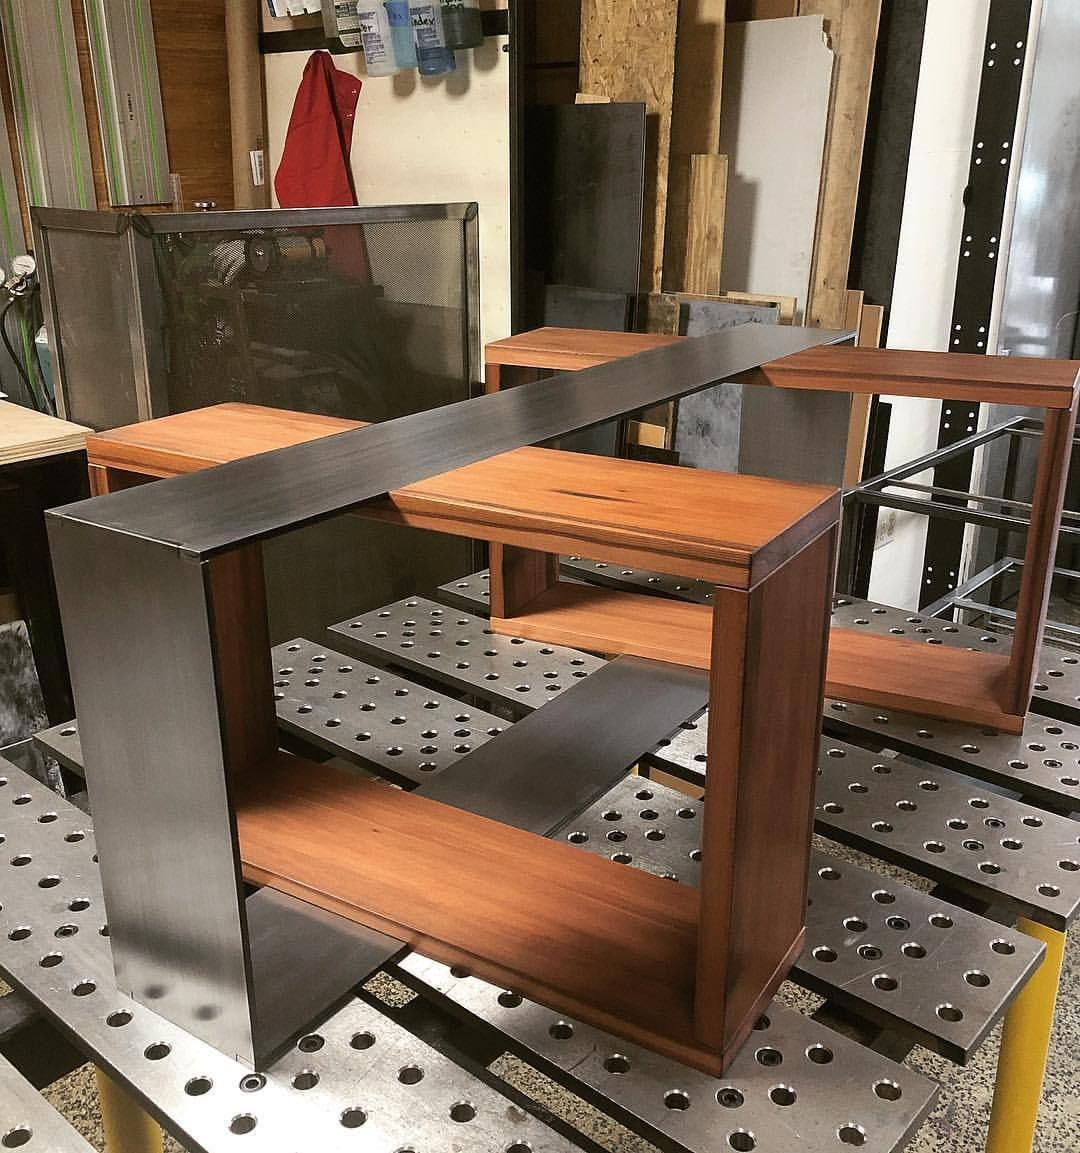 Patiently Waiting For Glass New Coffee Table Design Welding Furnituregallery Concrete Redhooka Coffee Table Furniture Design Cool Furniture